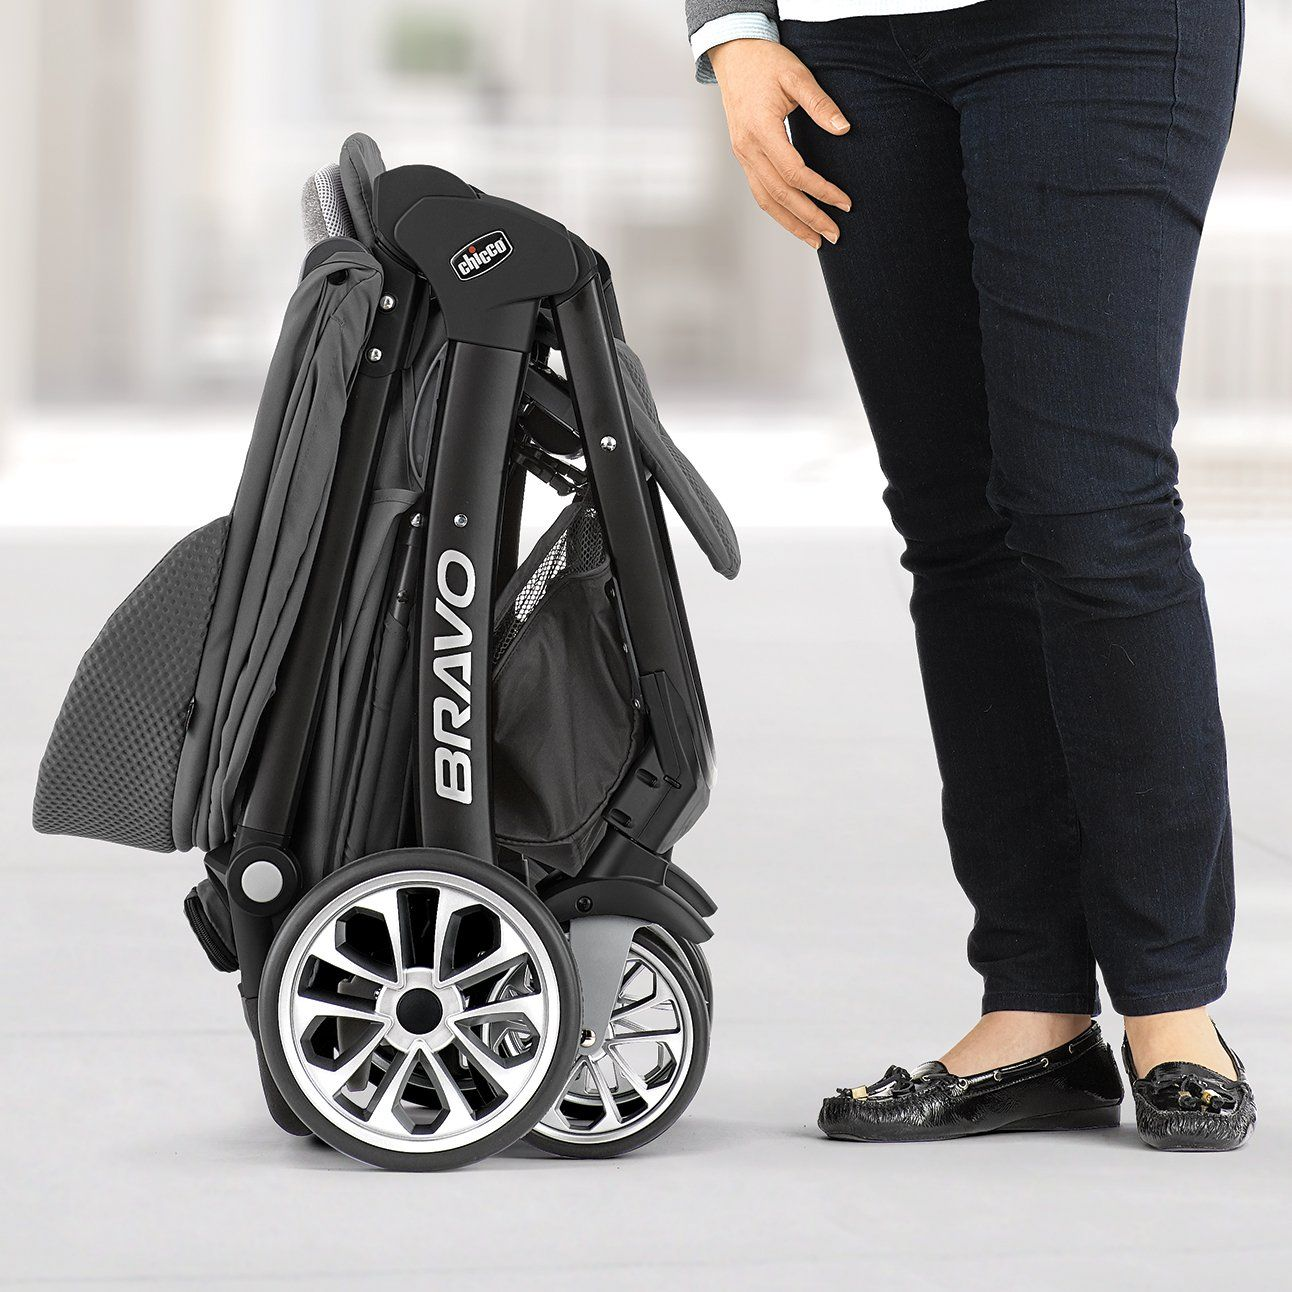 Chicco Bravo LE Stroller Black/Grey ** Want additional